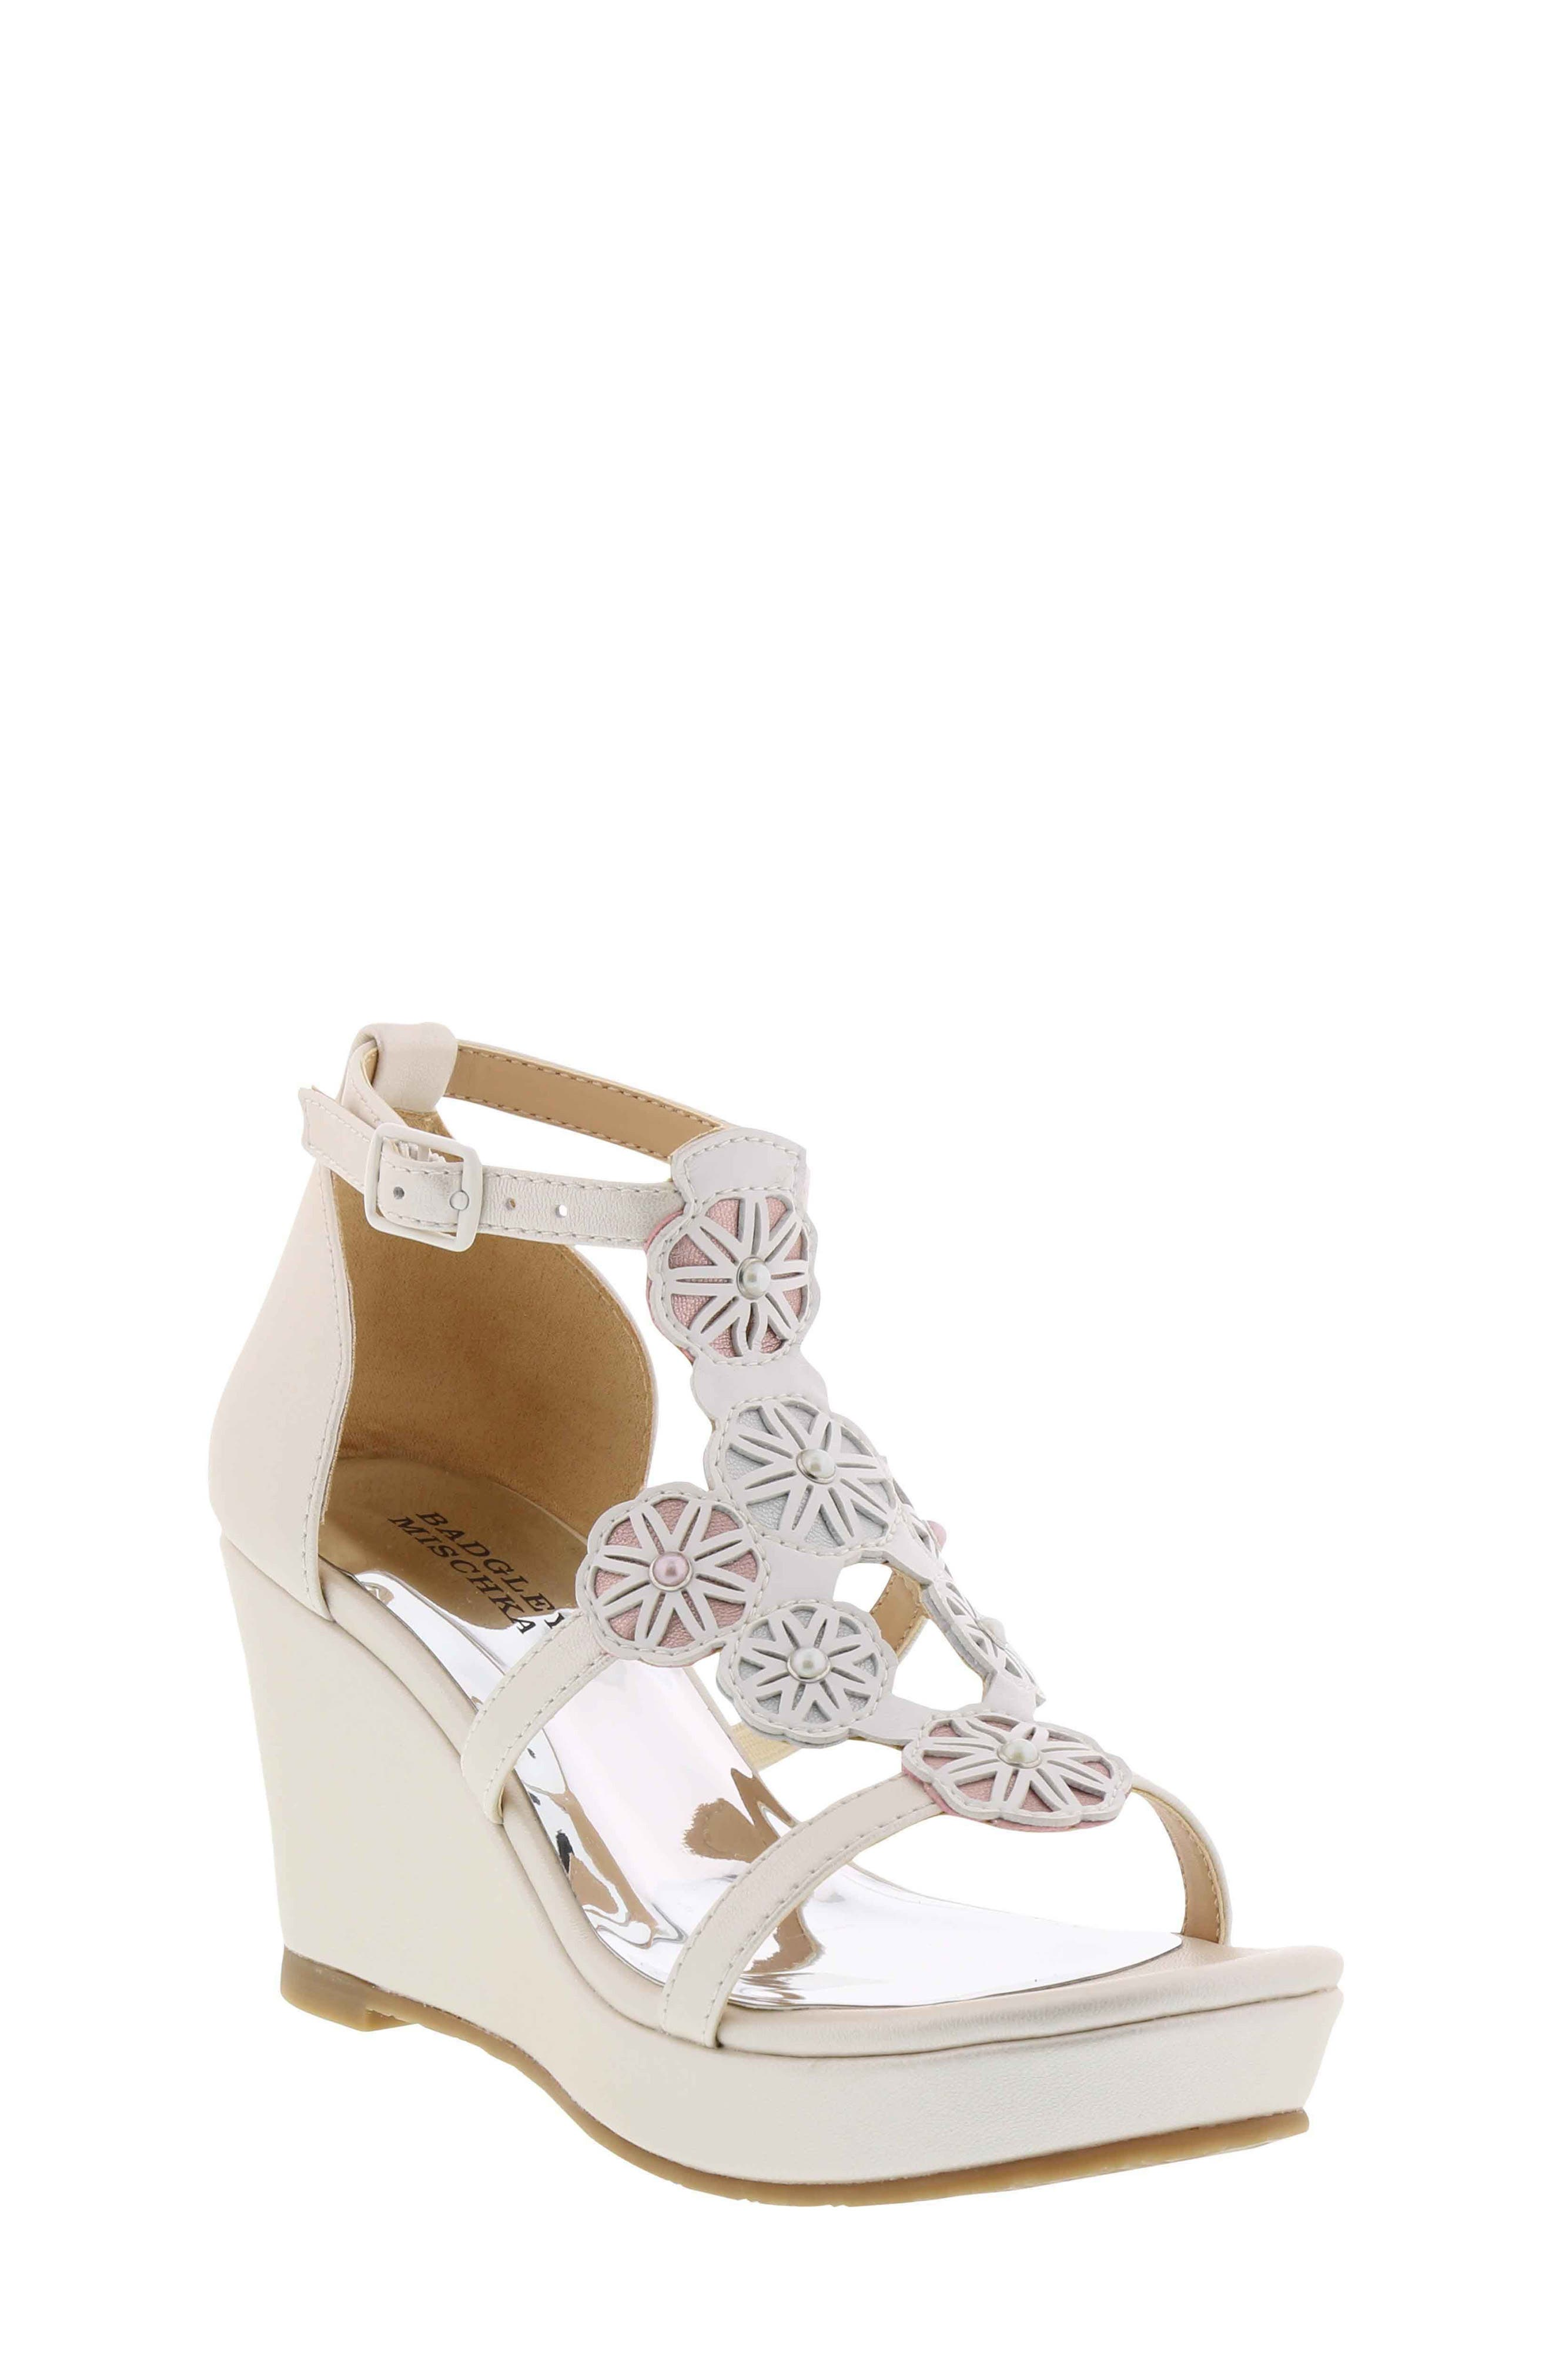 Badgley Mischka Sophia Flora Wedge Sandal (Toddler, Little Kid & Big Kid)